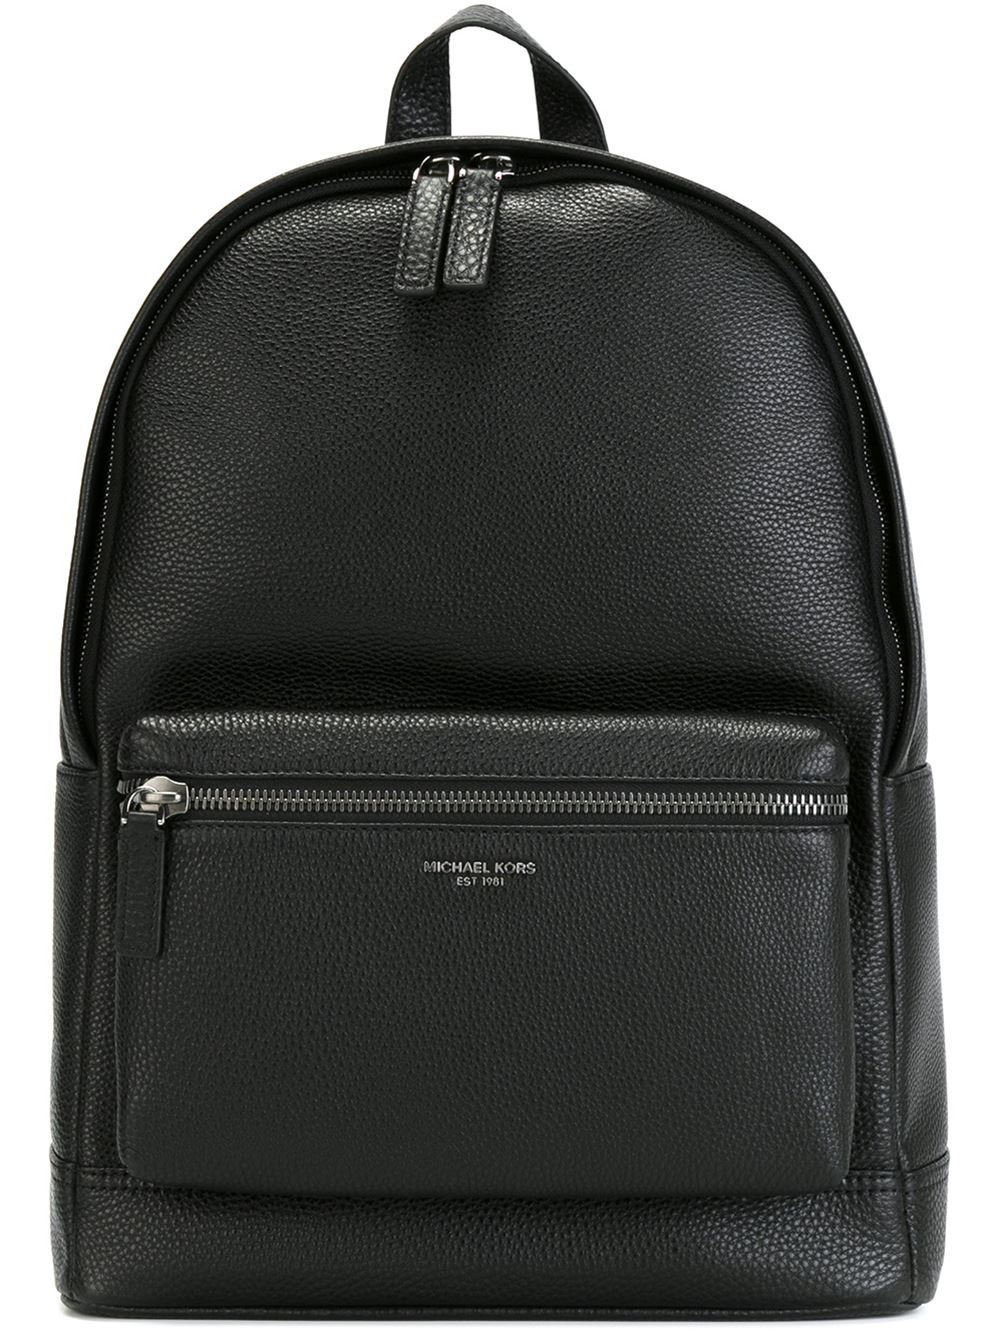 Michael Kors Bryant Backpack In Black For Men Lyst